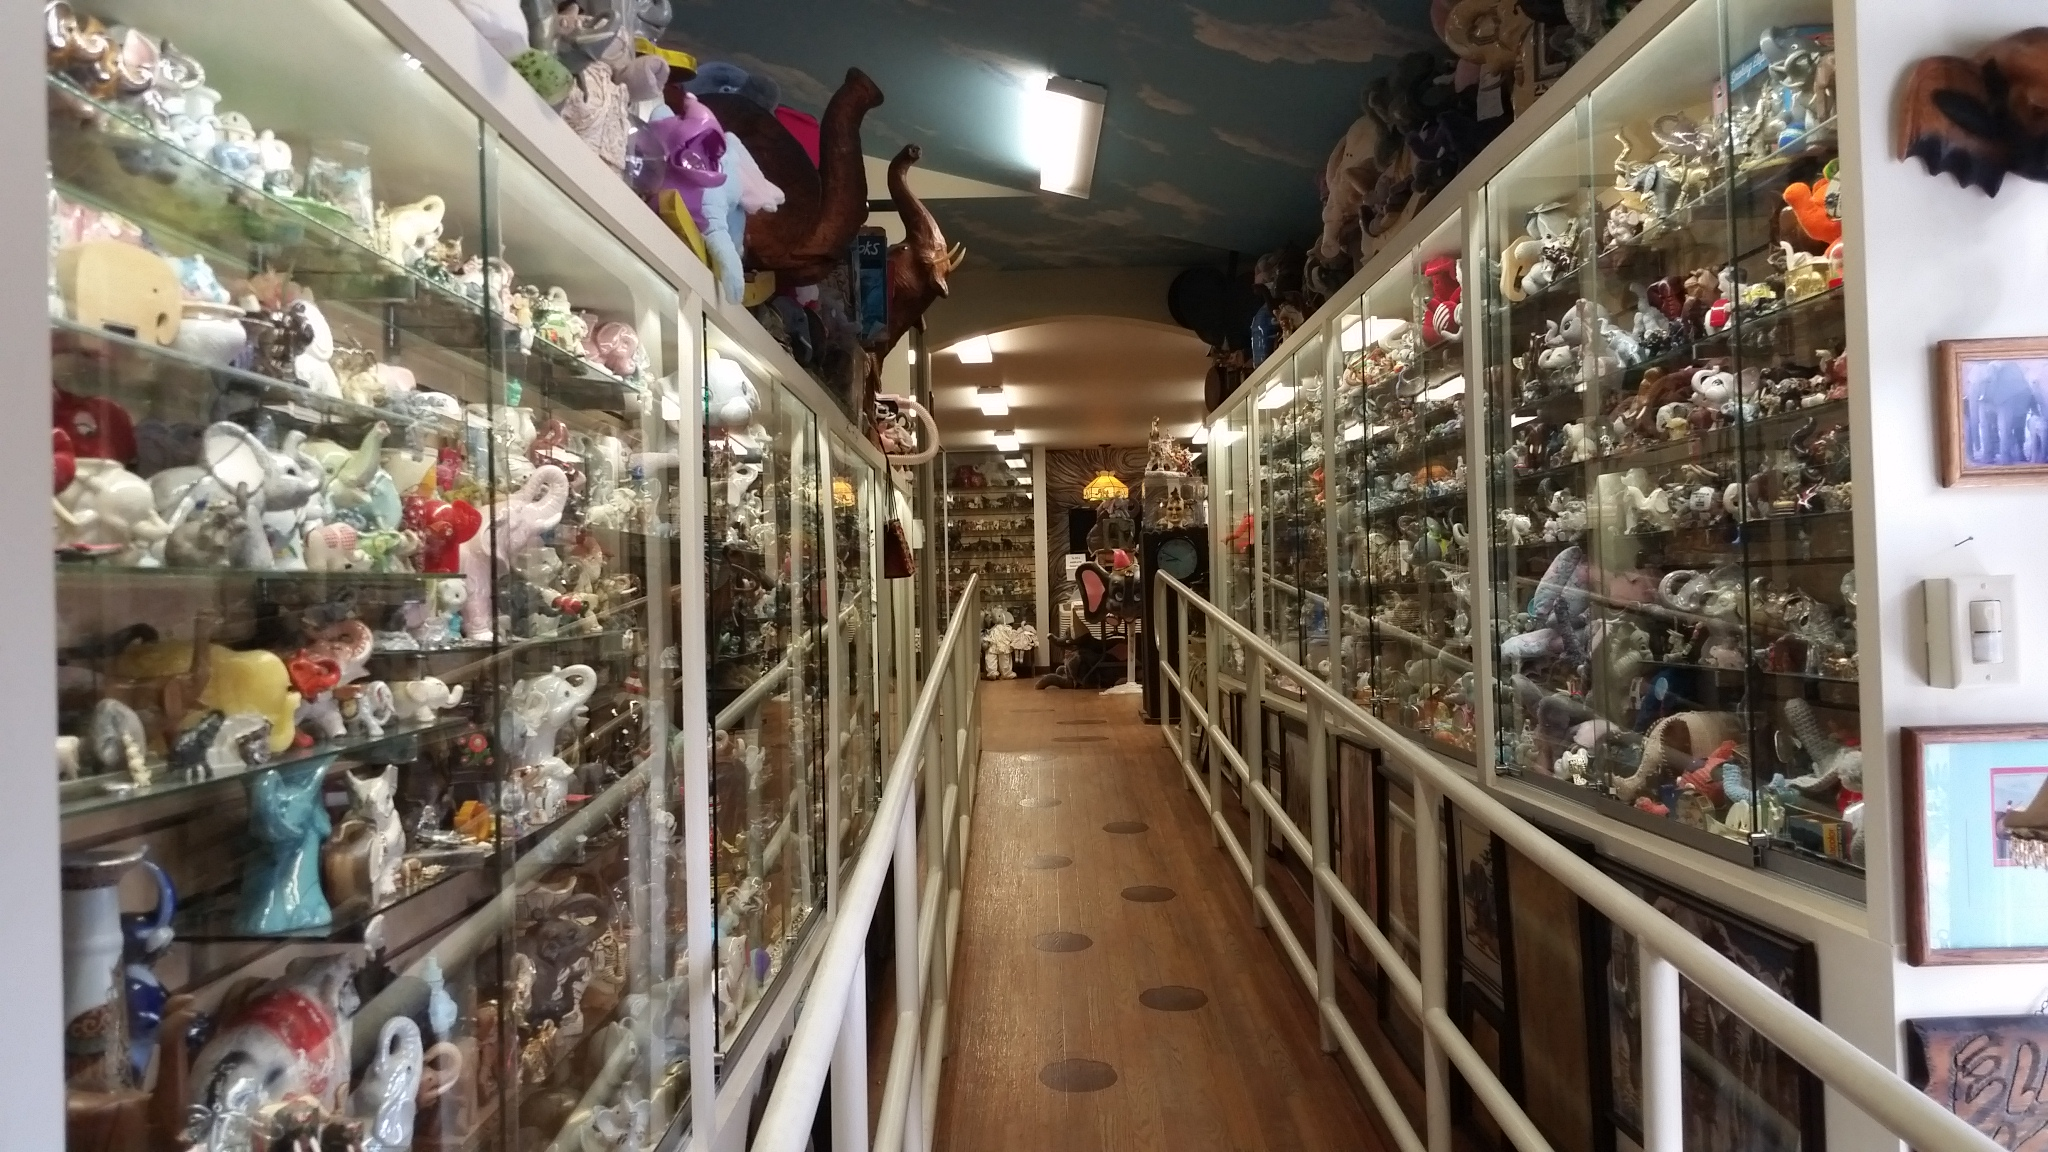 Elephant items on display at Mister Ed's Elephant Museum and Candy Emporium